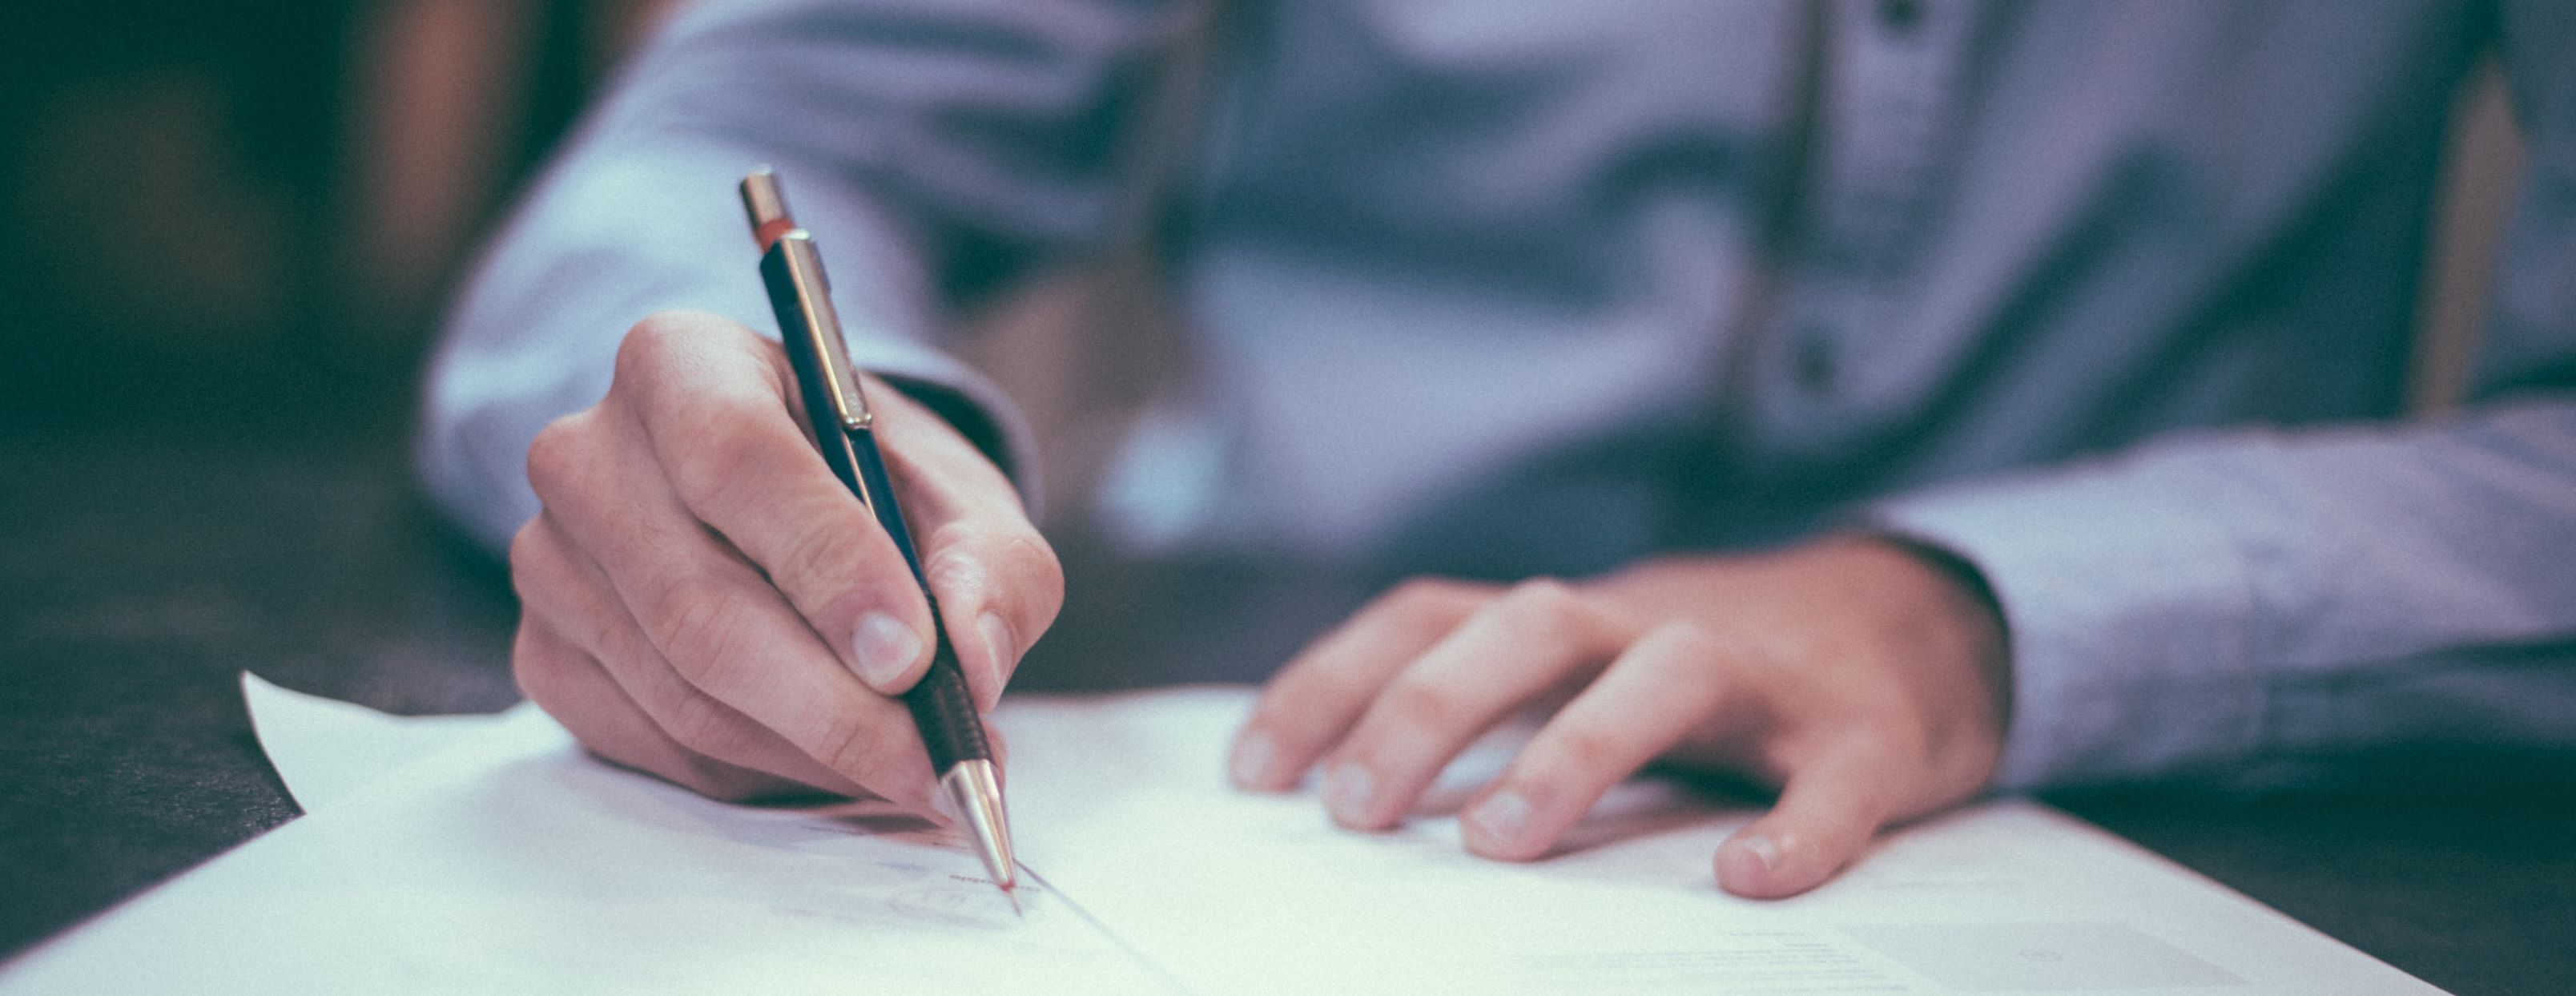 A photo of a man weaing a smart shirt holding a pen and signing a document